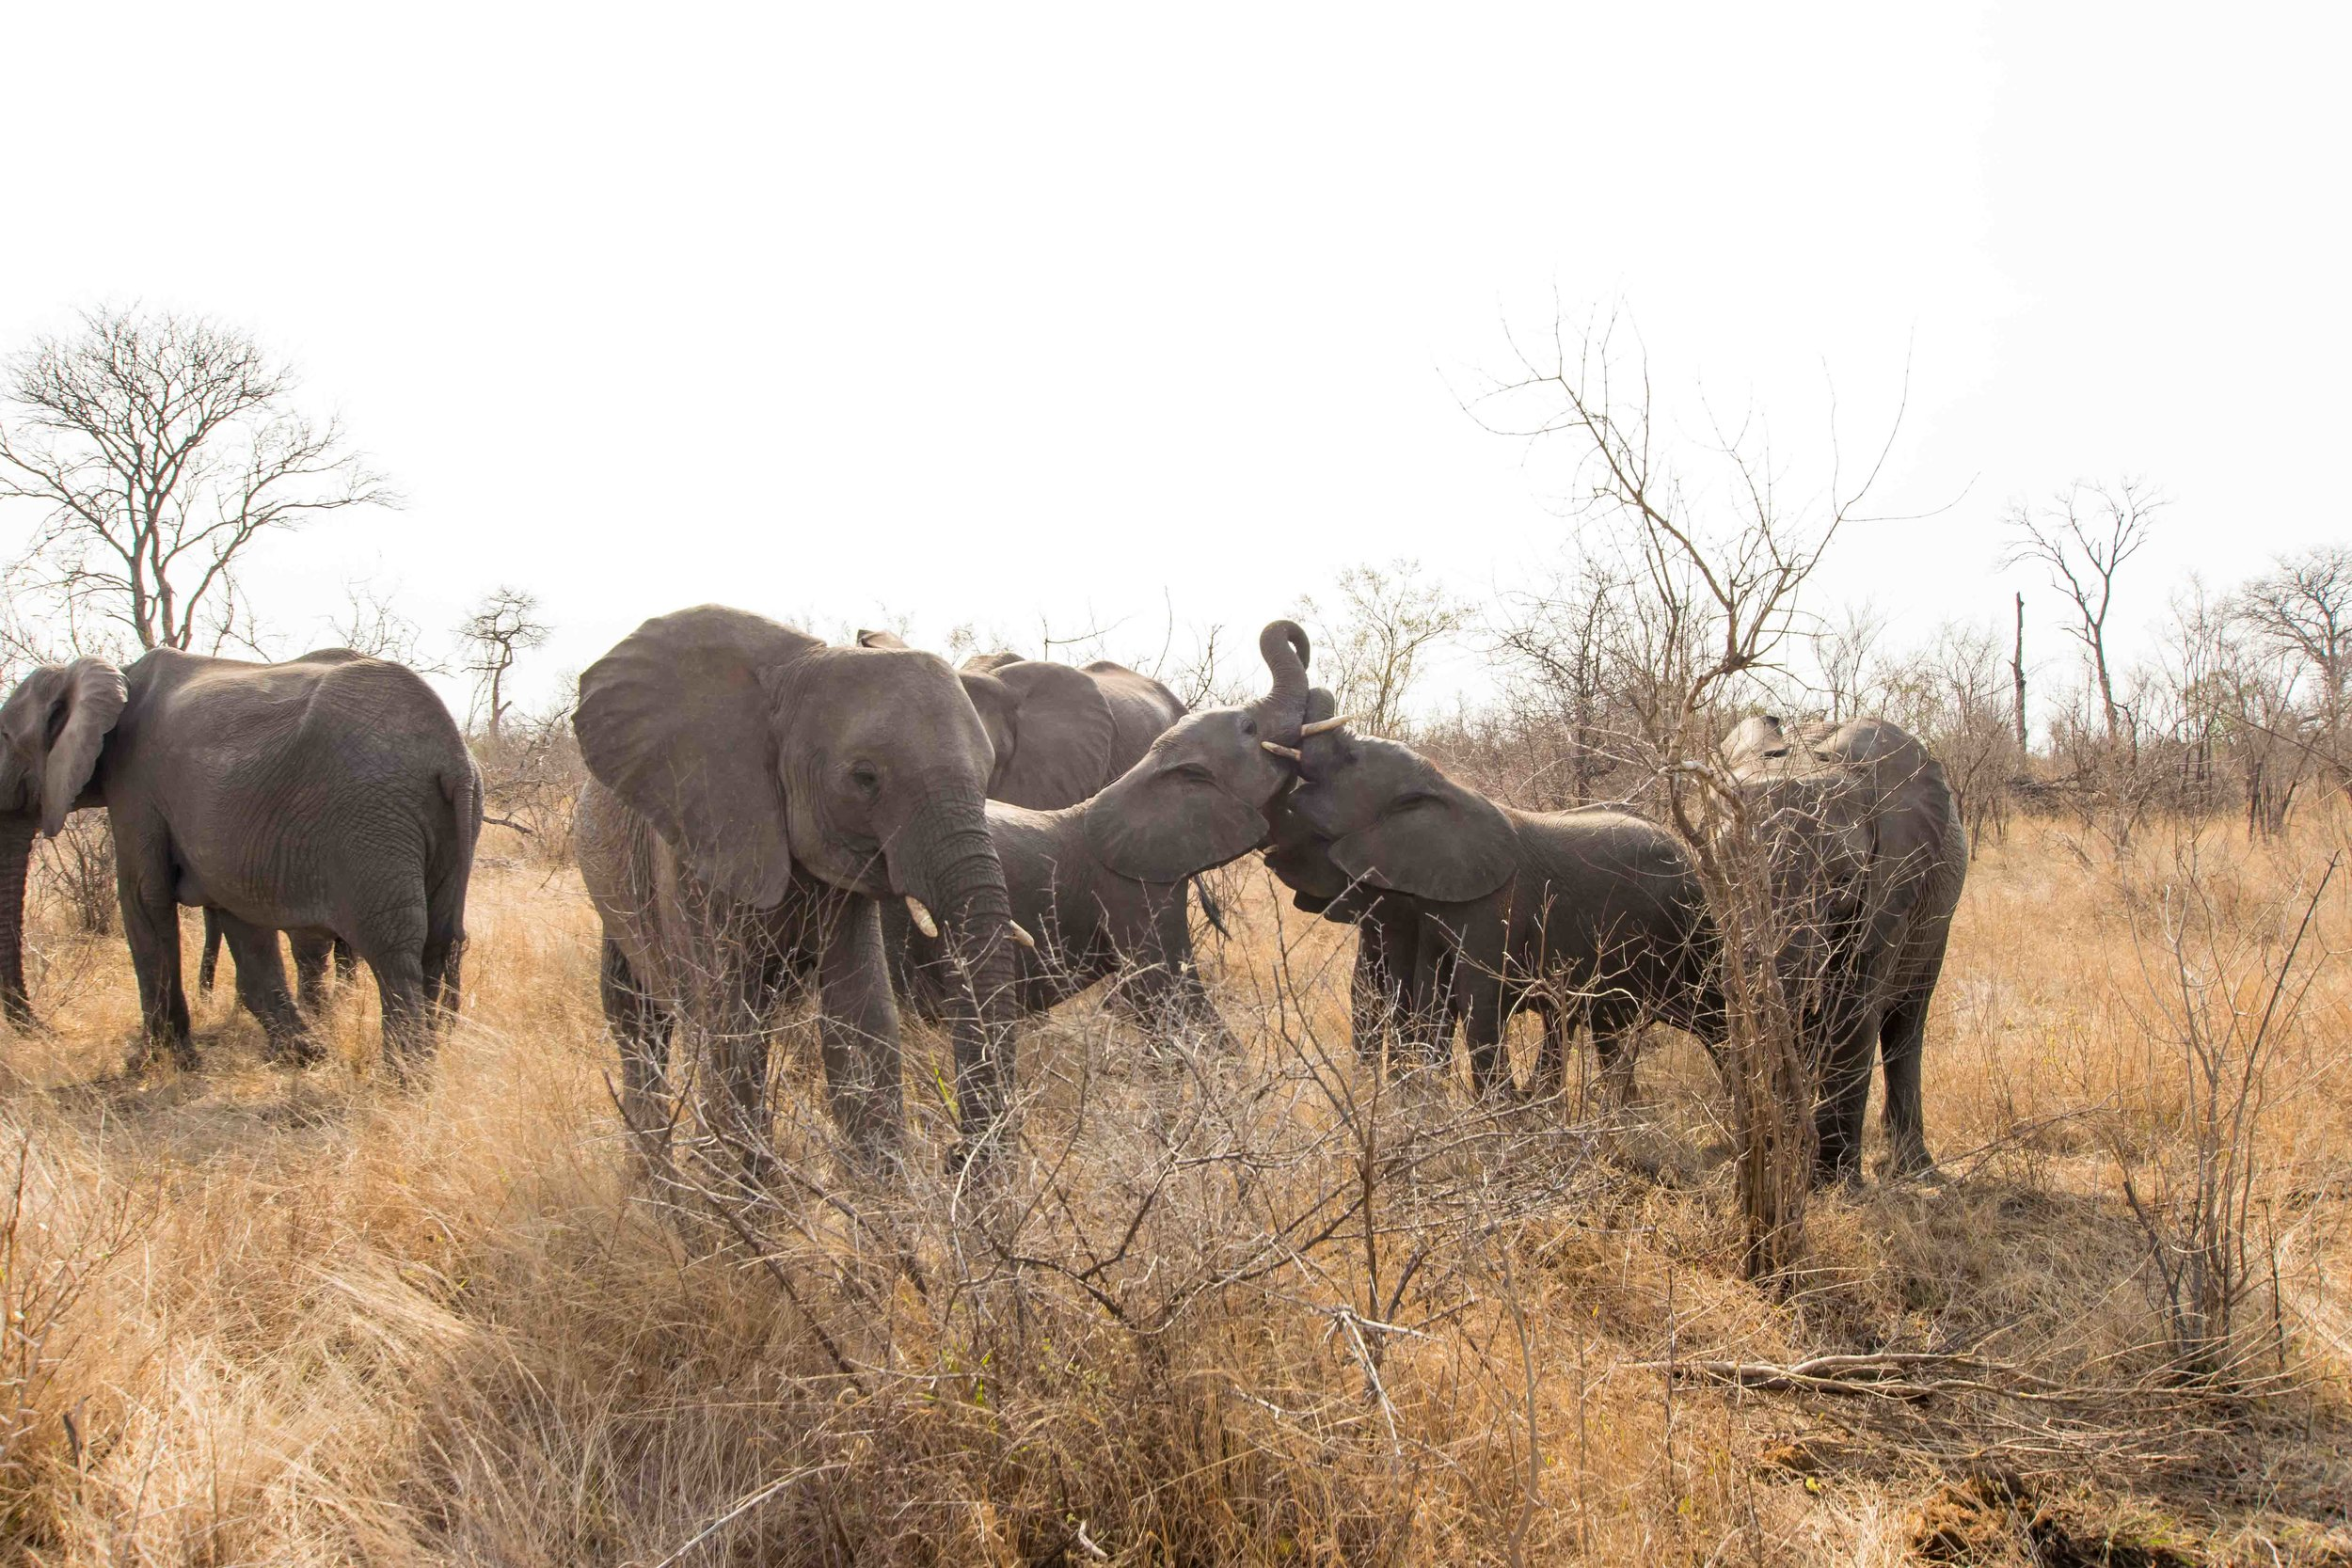 Round the corner to an entire herd of elephants - not upser about it.... yet